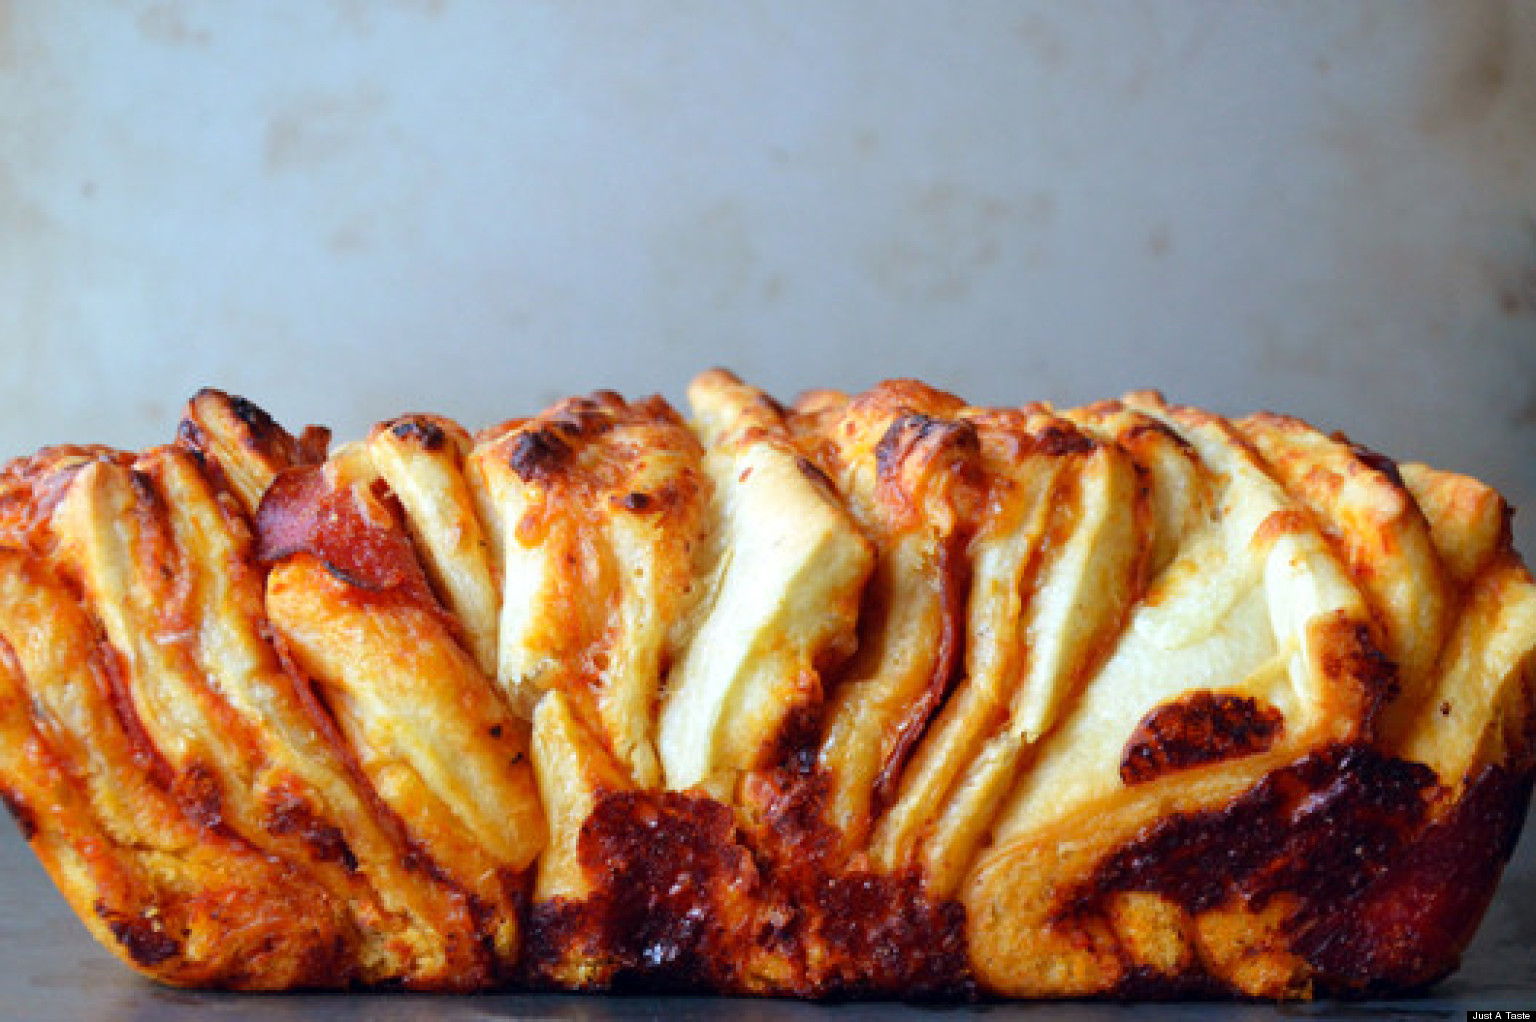 16 Recipes You've Got To Try For Pull-Apart Bread | HuffPost